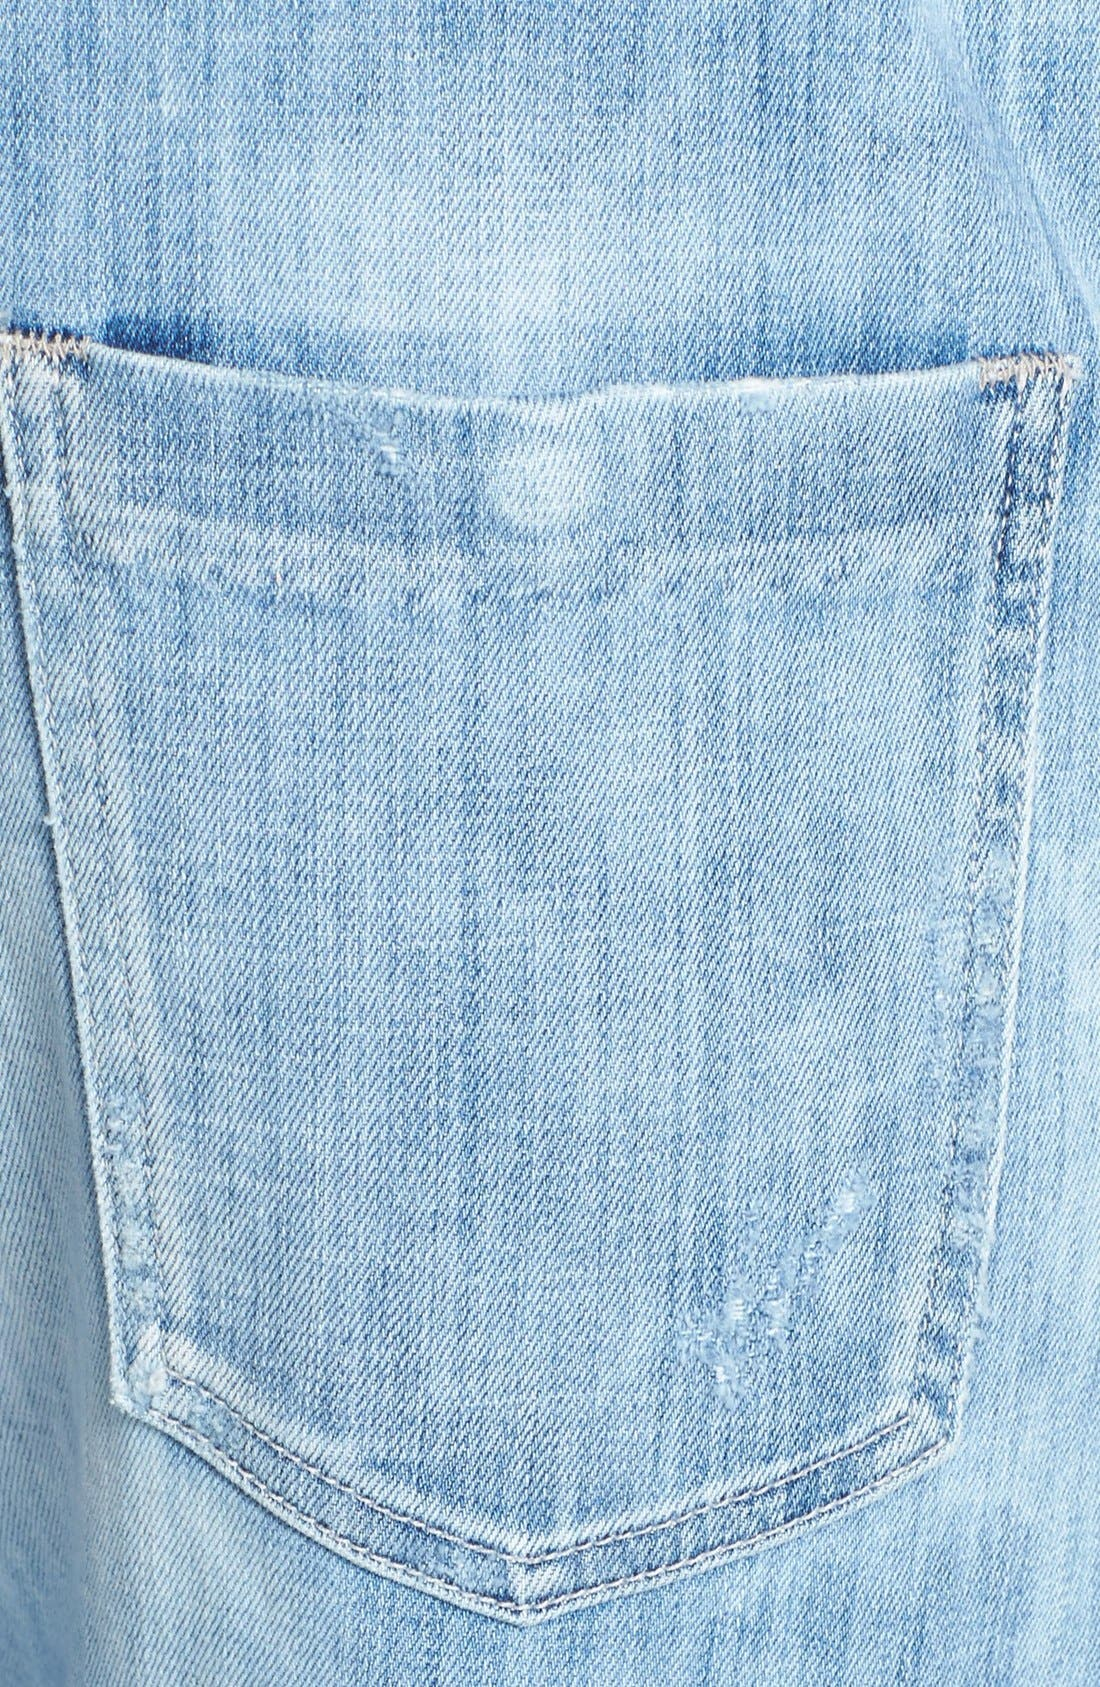 'Quincey' Distressed Denim Overalls,                             Alternate thumbnail 4, color,                             400